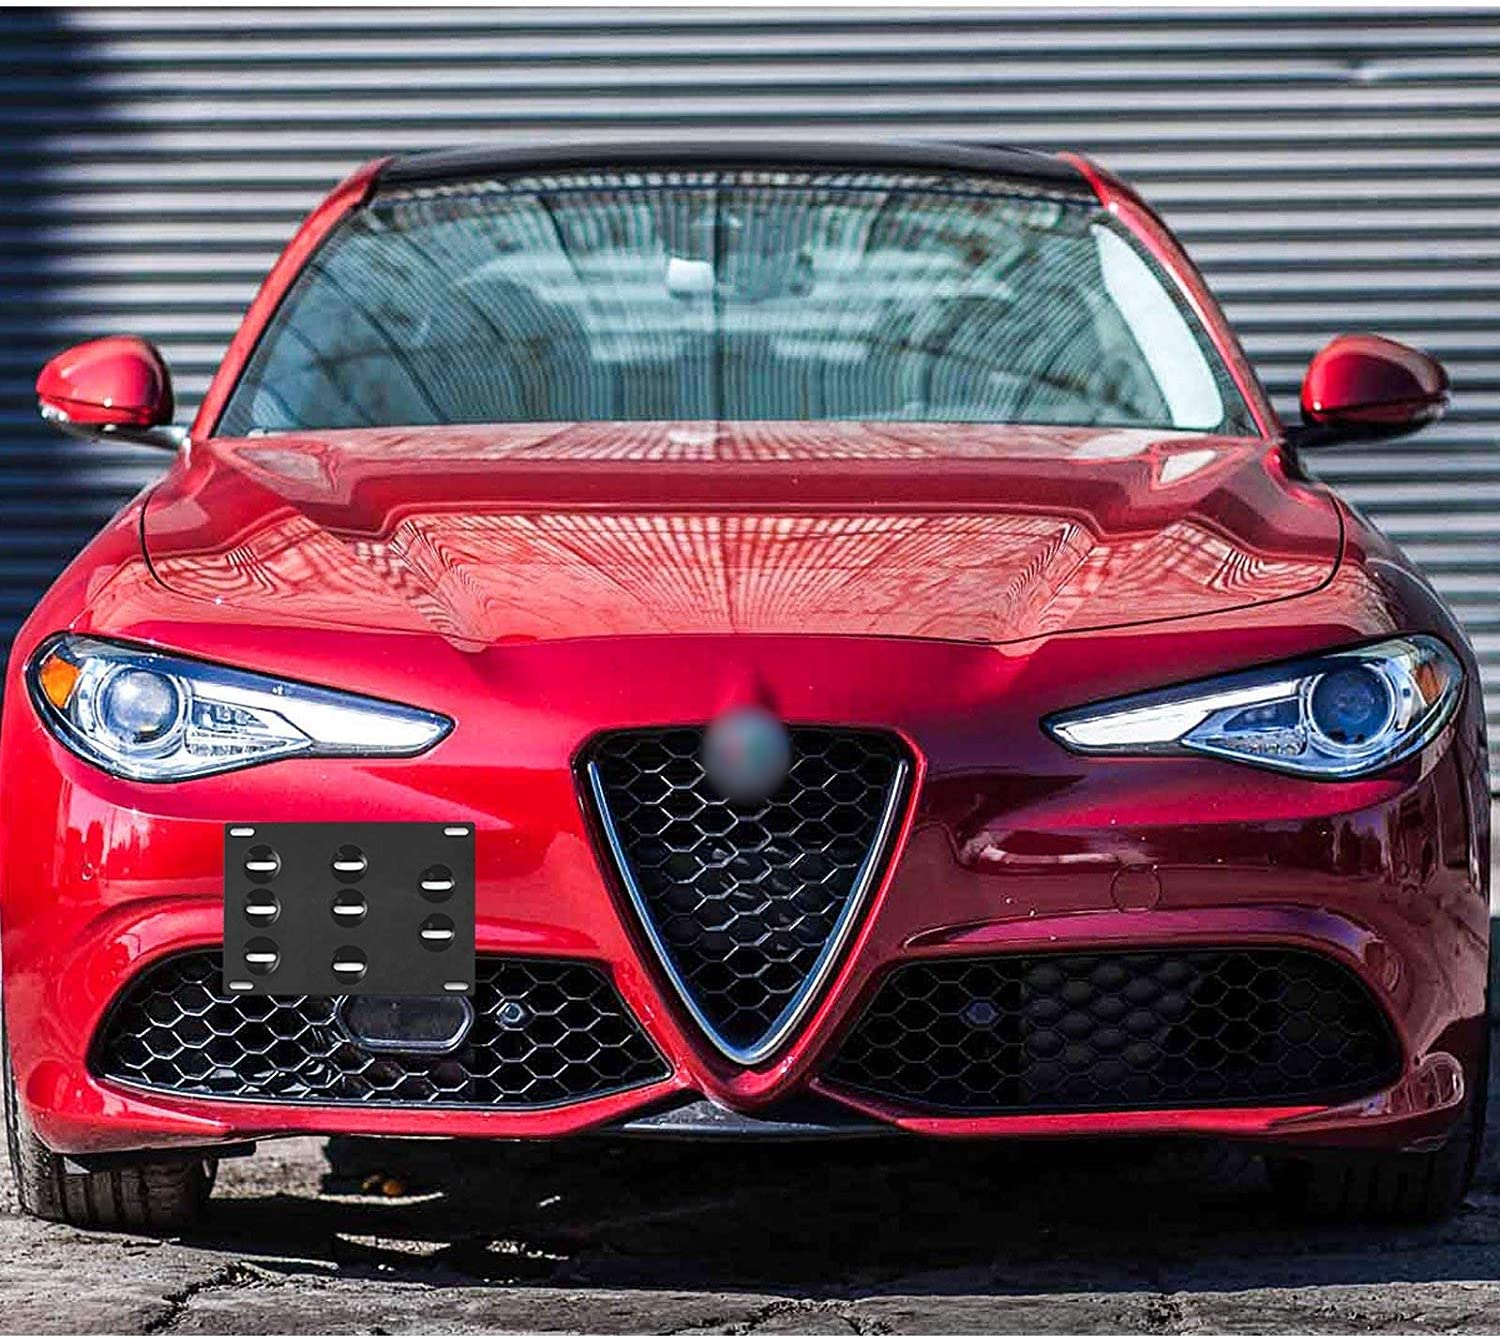 No Drill Xotic Tech Red Front Bumper Tow License Plate Mount Bracket Relocator Kit for Alfa Romeo Giulia 2017-up